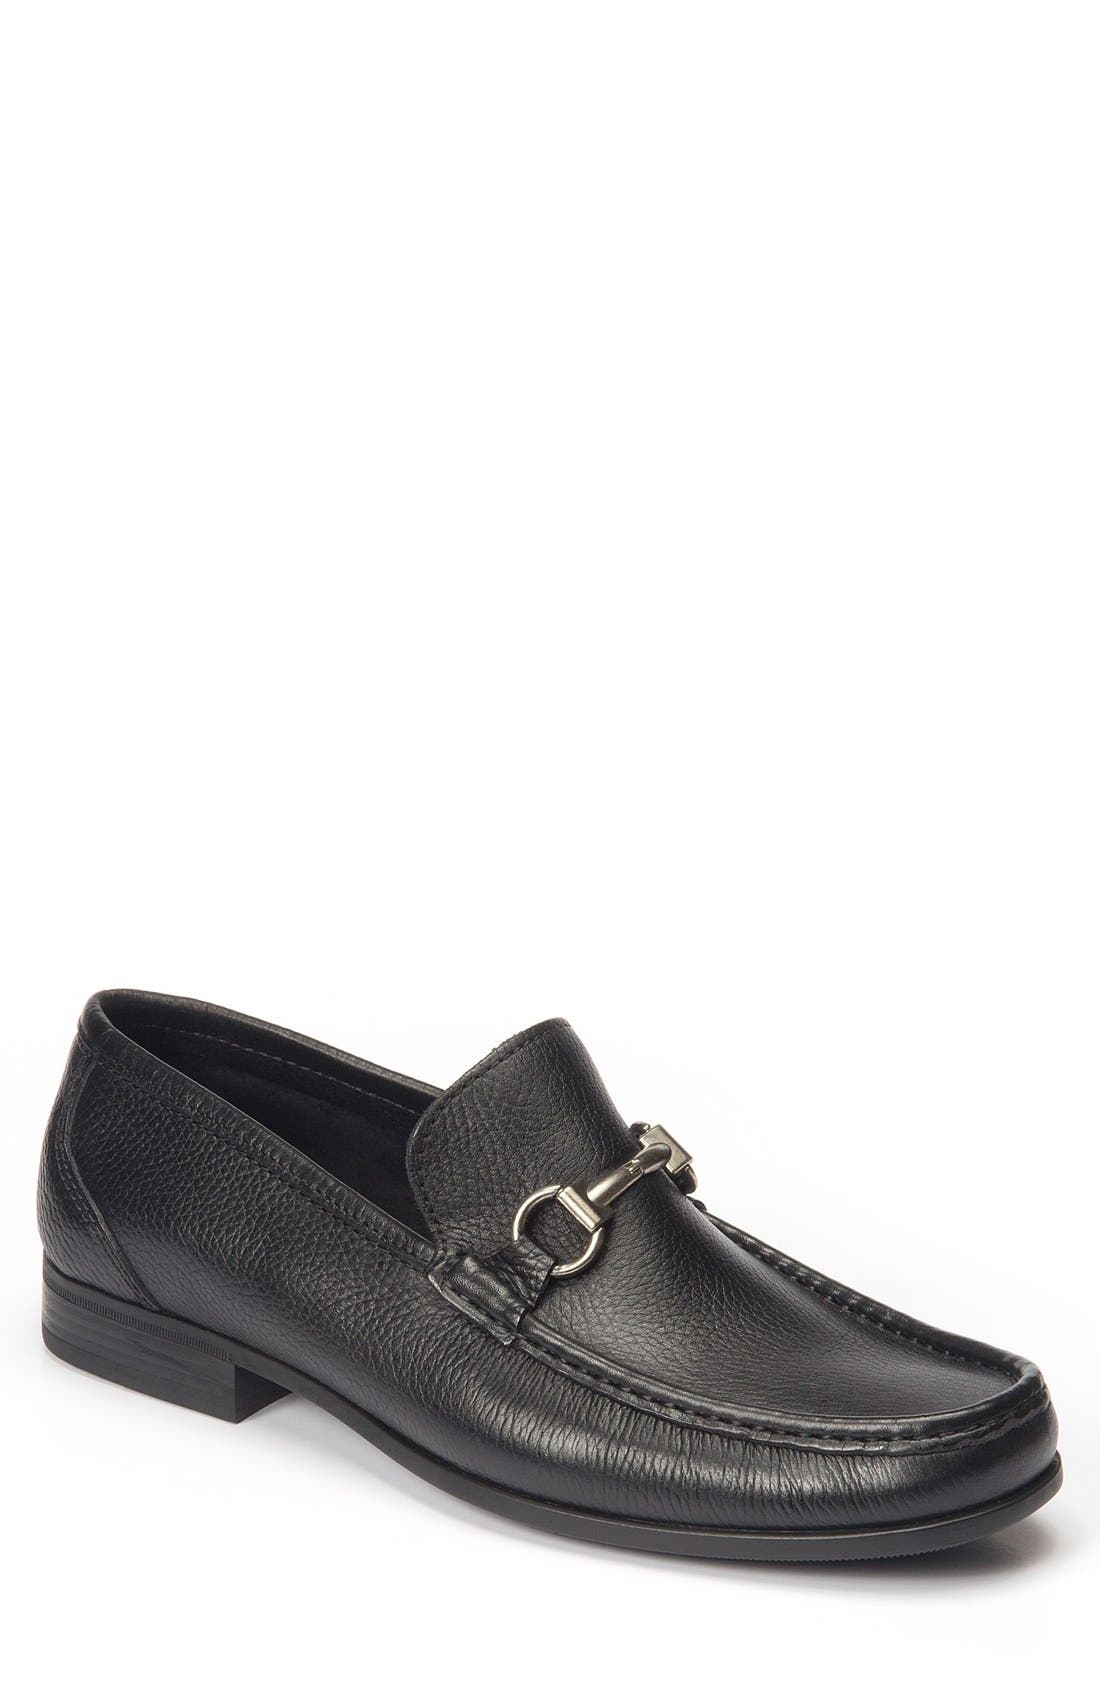 'Malibu' Suede Bit Loafer,                             Main thumbnail 1, color,                             BLACK LEATHER